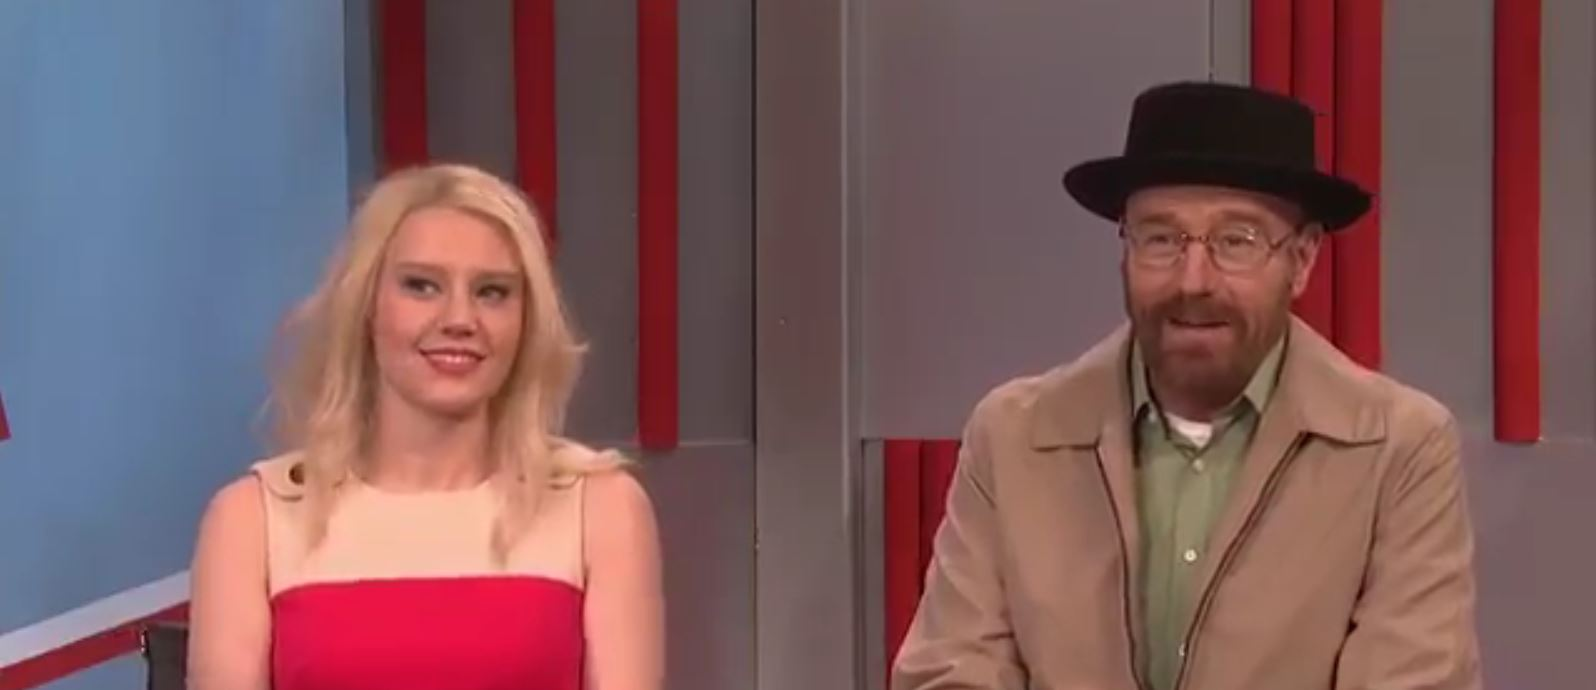 Kate Mckinnon Videos At Abc News Video Archive At